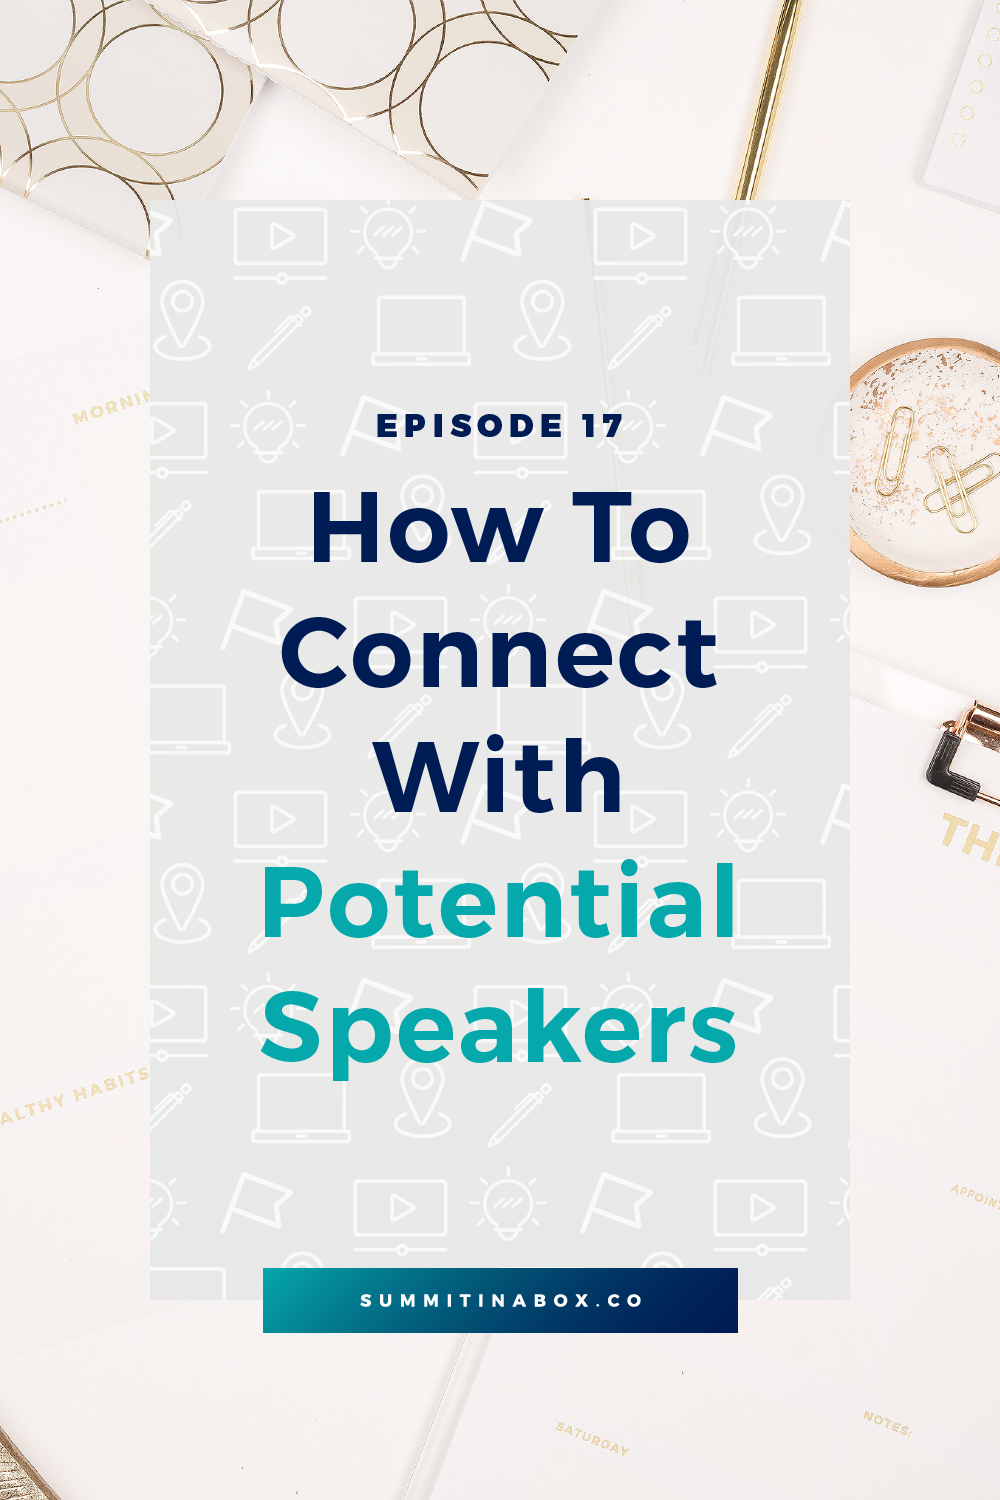 Pitching virtual summit speakers is much easier when you've made a connection first. Let's cover a simple strategy to help you connect with potential speakers.